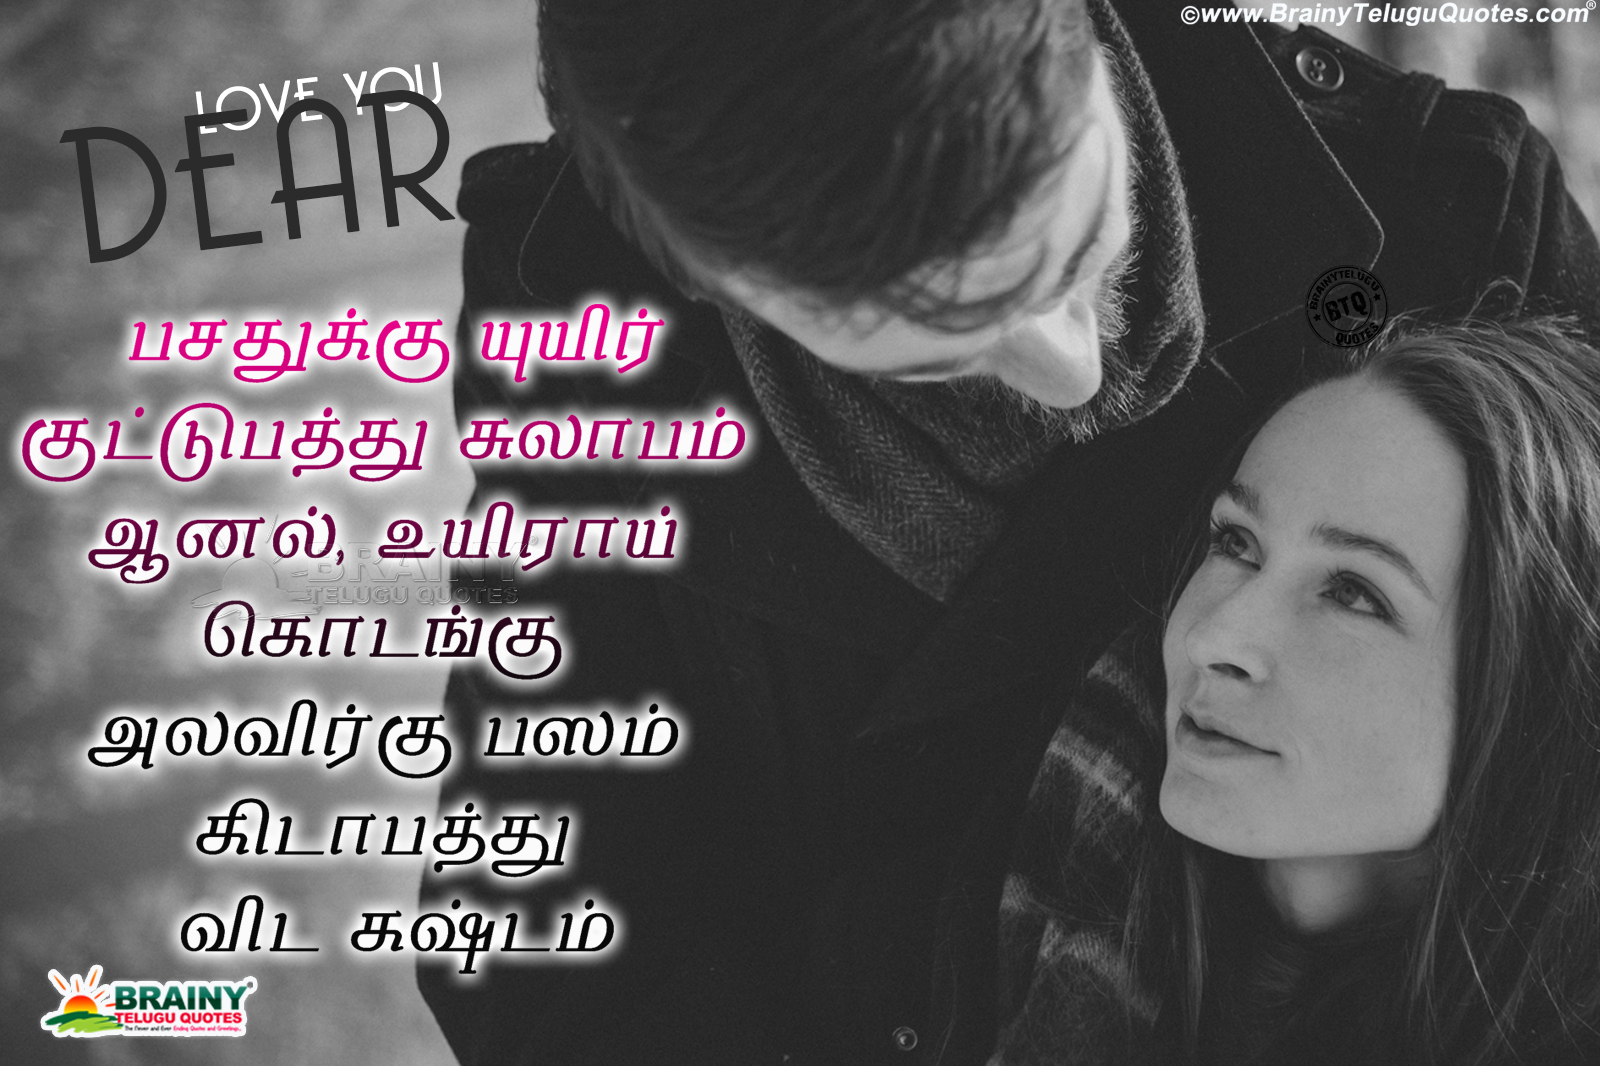 Heart Touching Tamil Love Quotes Love You Dear Tamil Romantic Quotes Brainyteluguquotes Comtelugu Quotes English Quotes Hindi Quotes Tamil Quotes Greetings